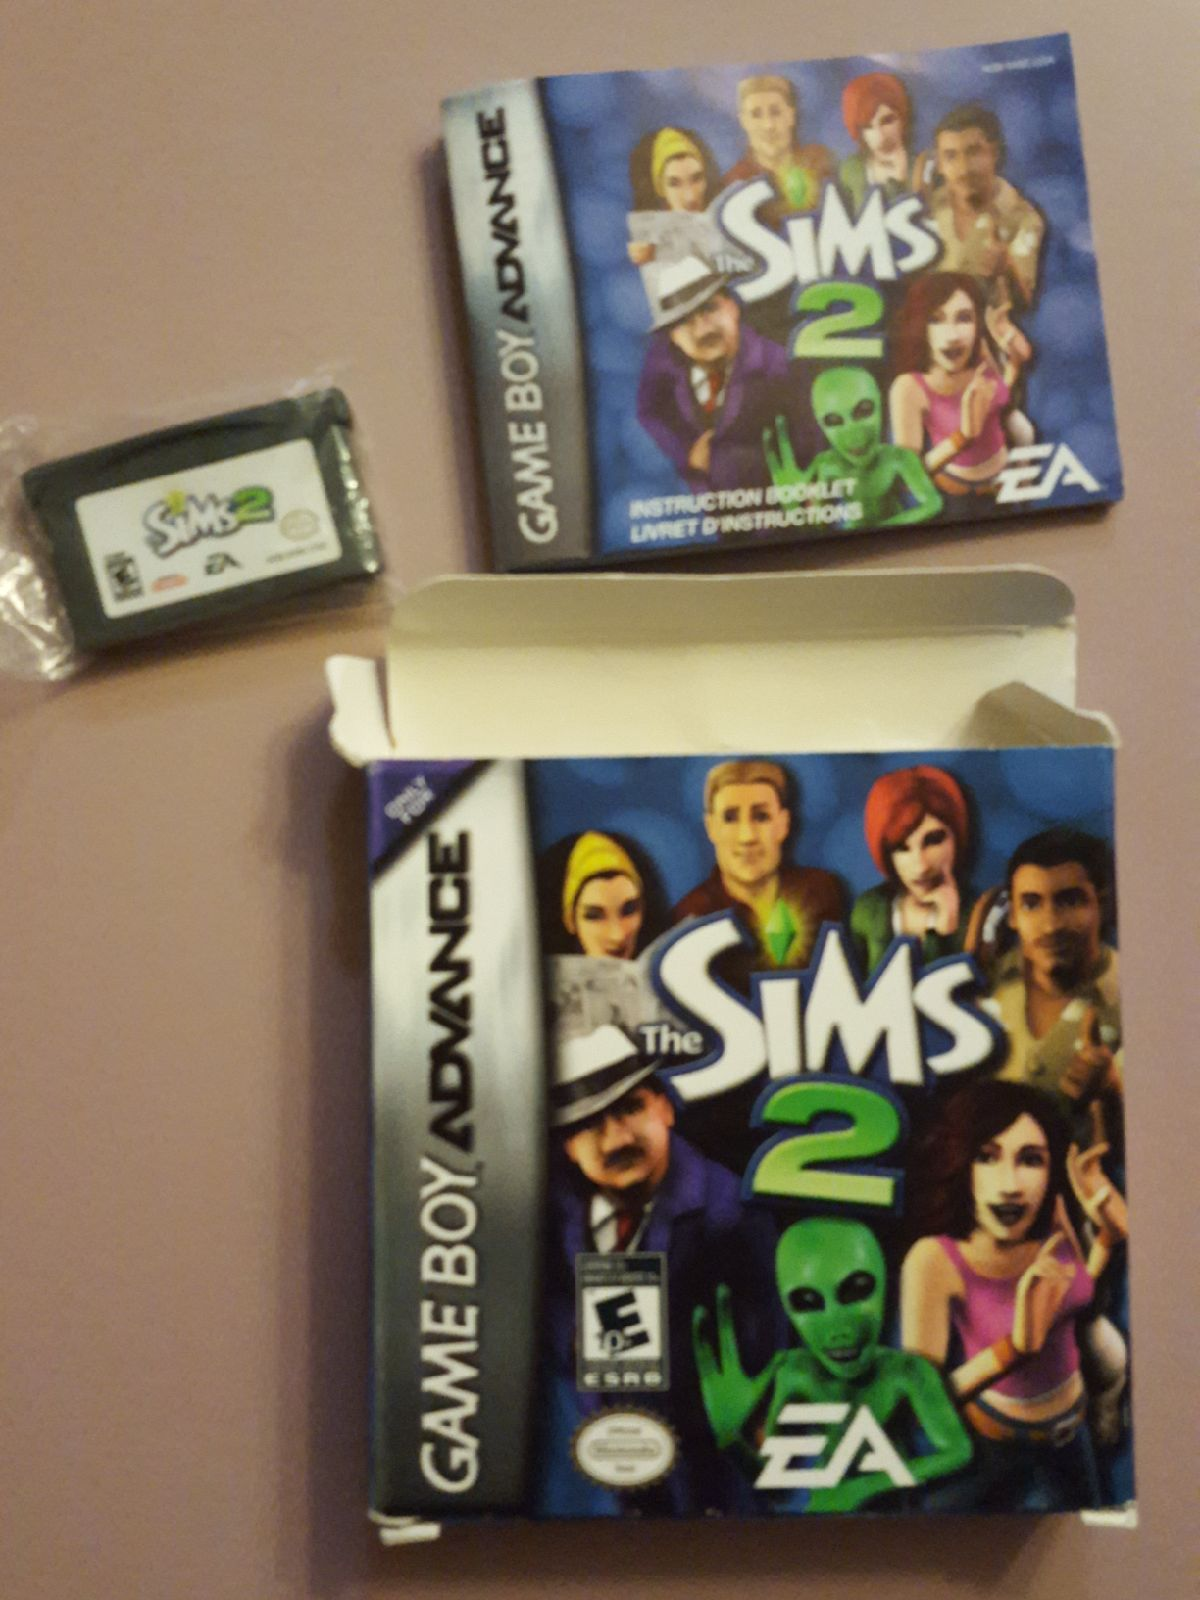 The Sims 2 Gameboy Advance